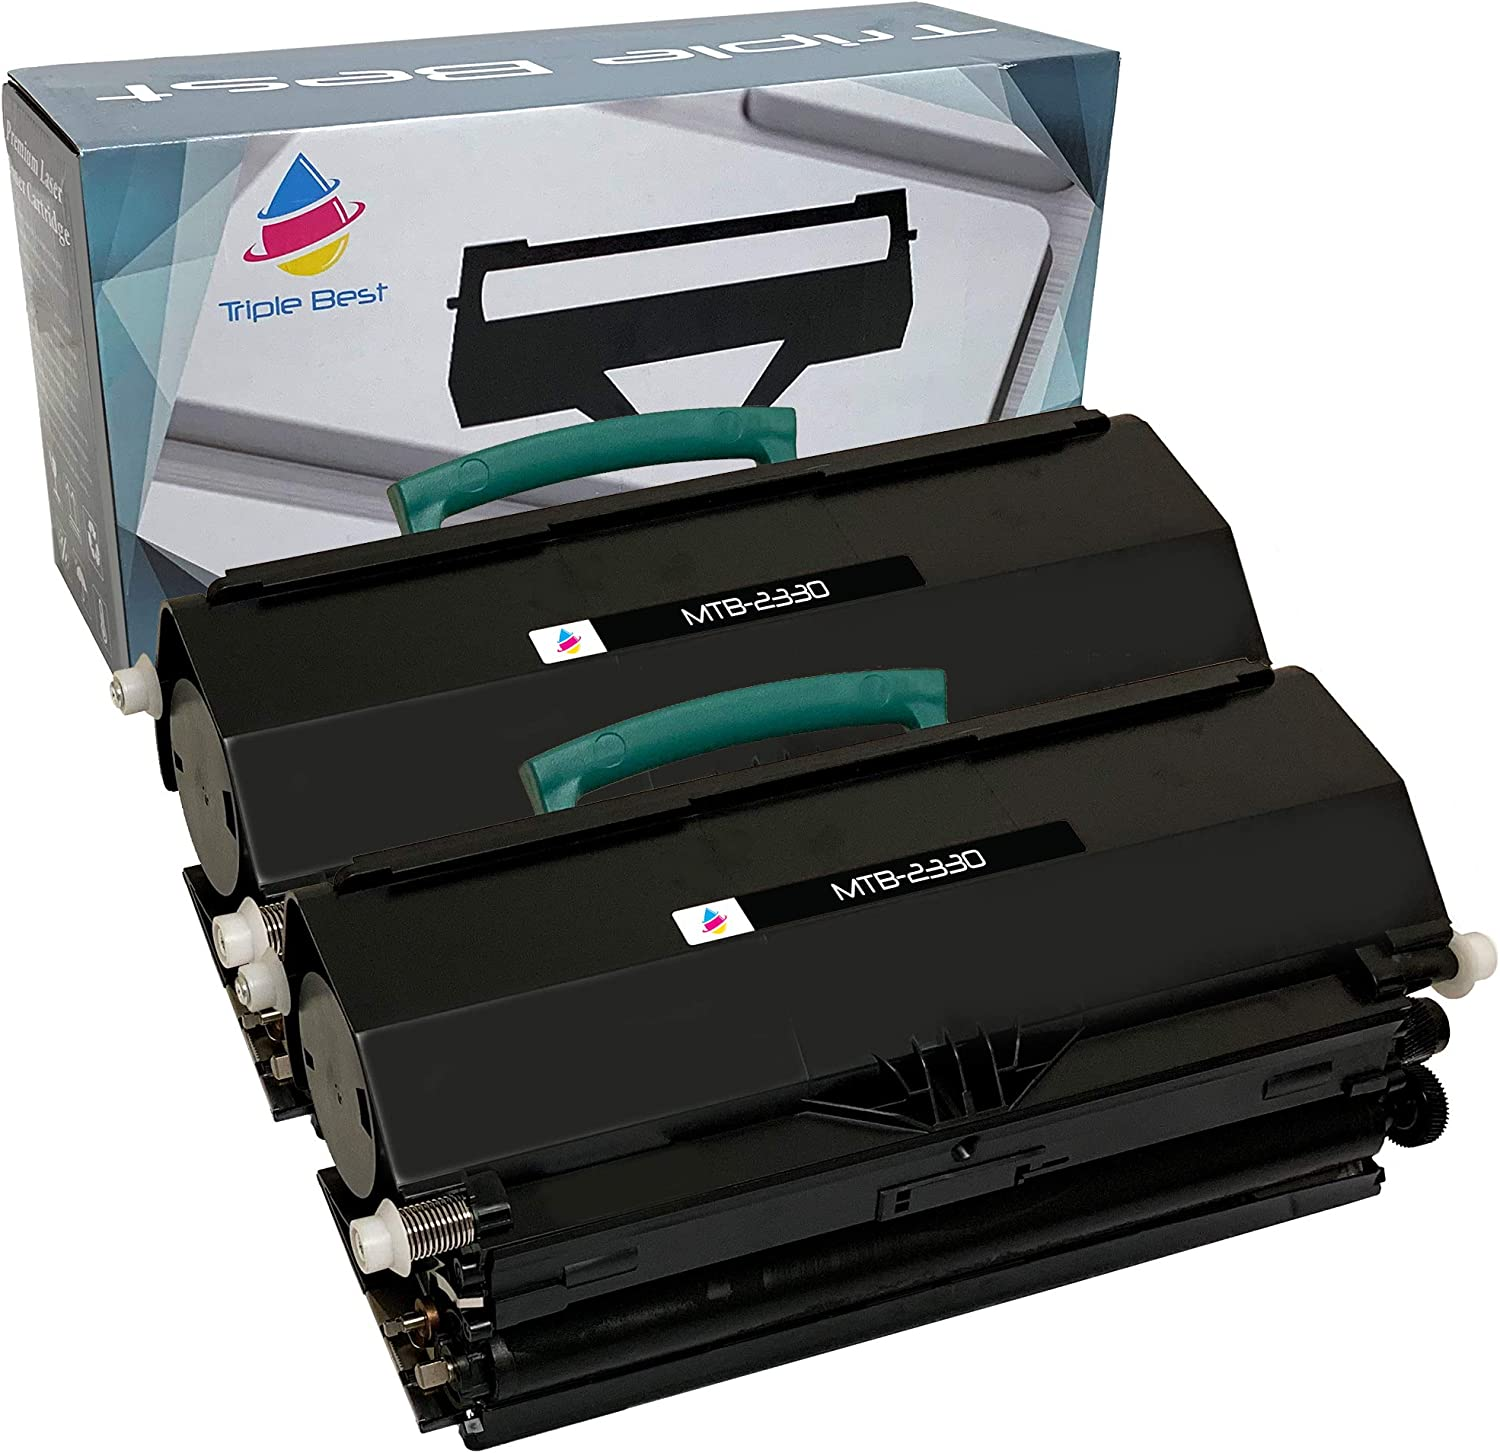 Triple Best Set of 2 Remanufactured Toner Cartridge for Replacement of Dell 2330 2330d 2330dn 2350 2350d 2350dn PK941 XN009 (6,000 Pages)